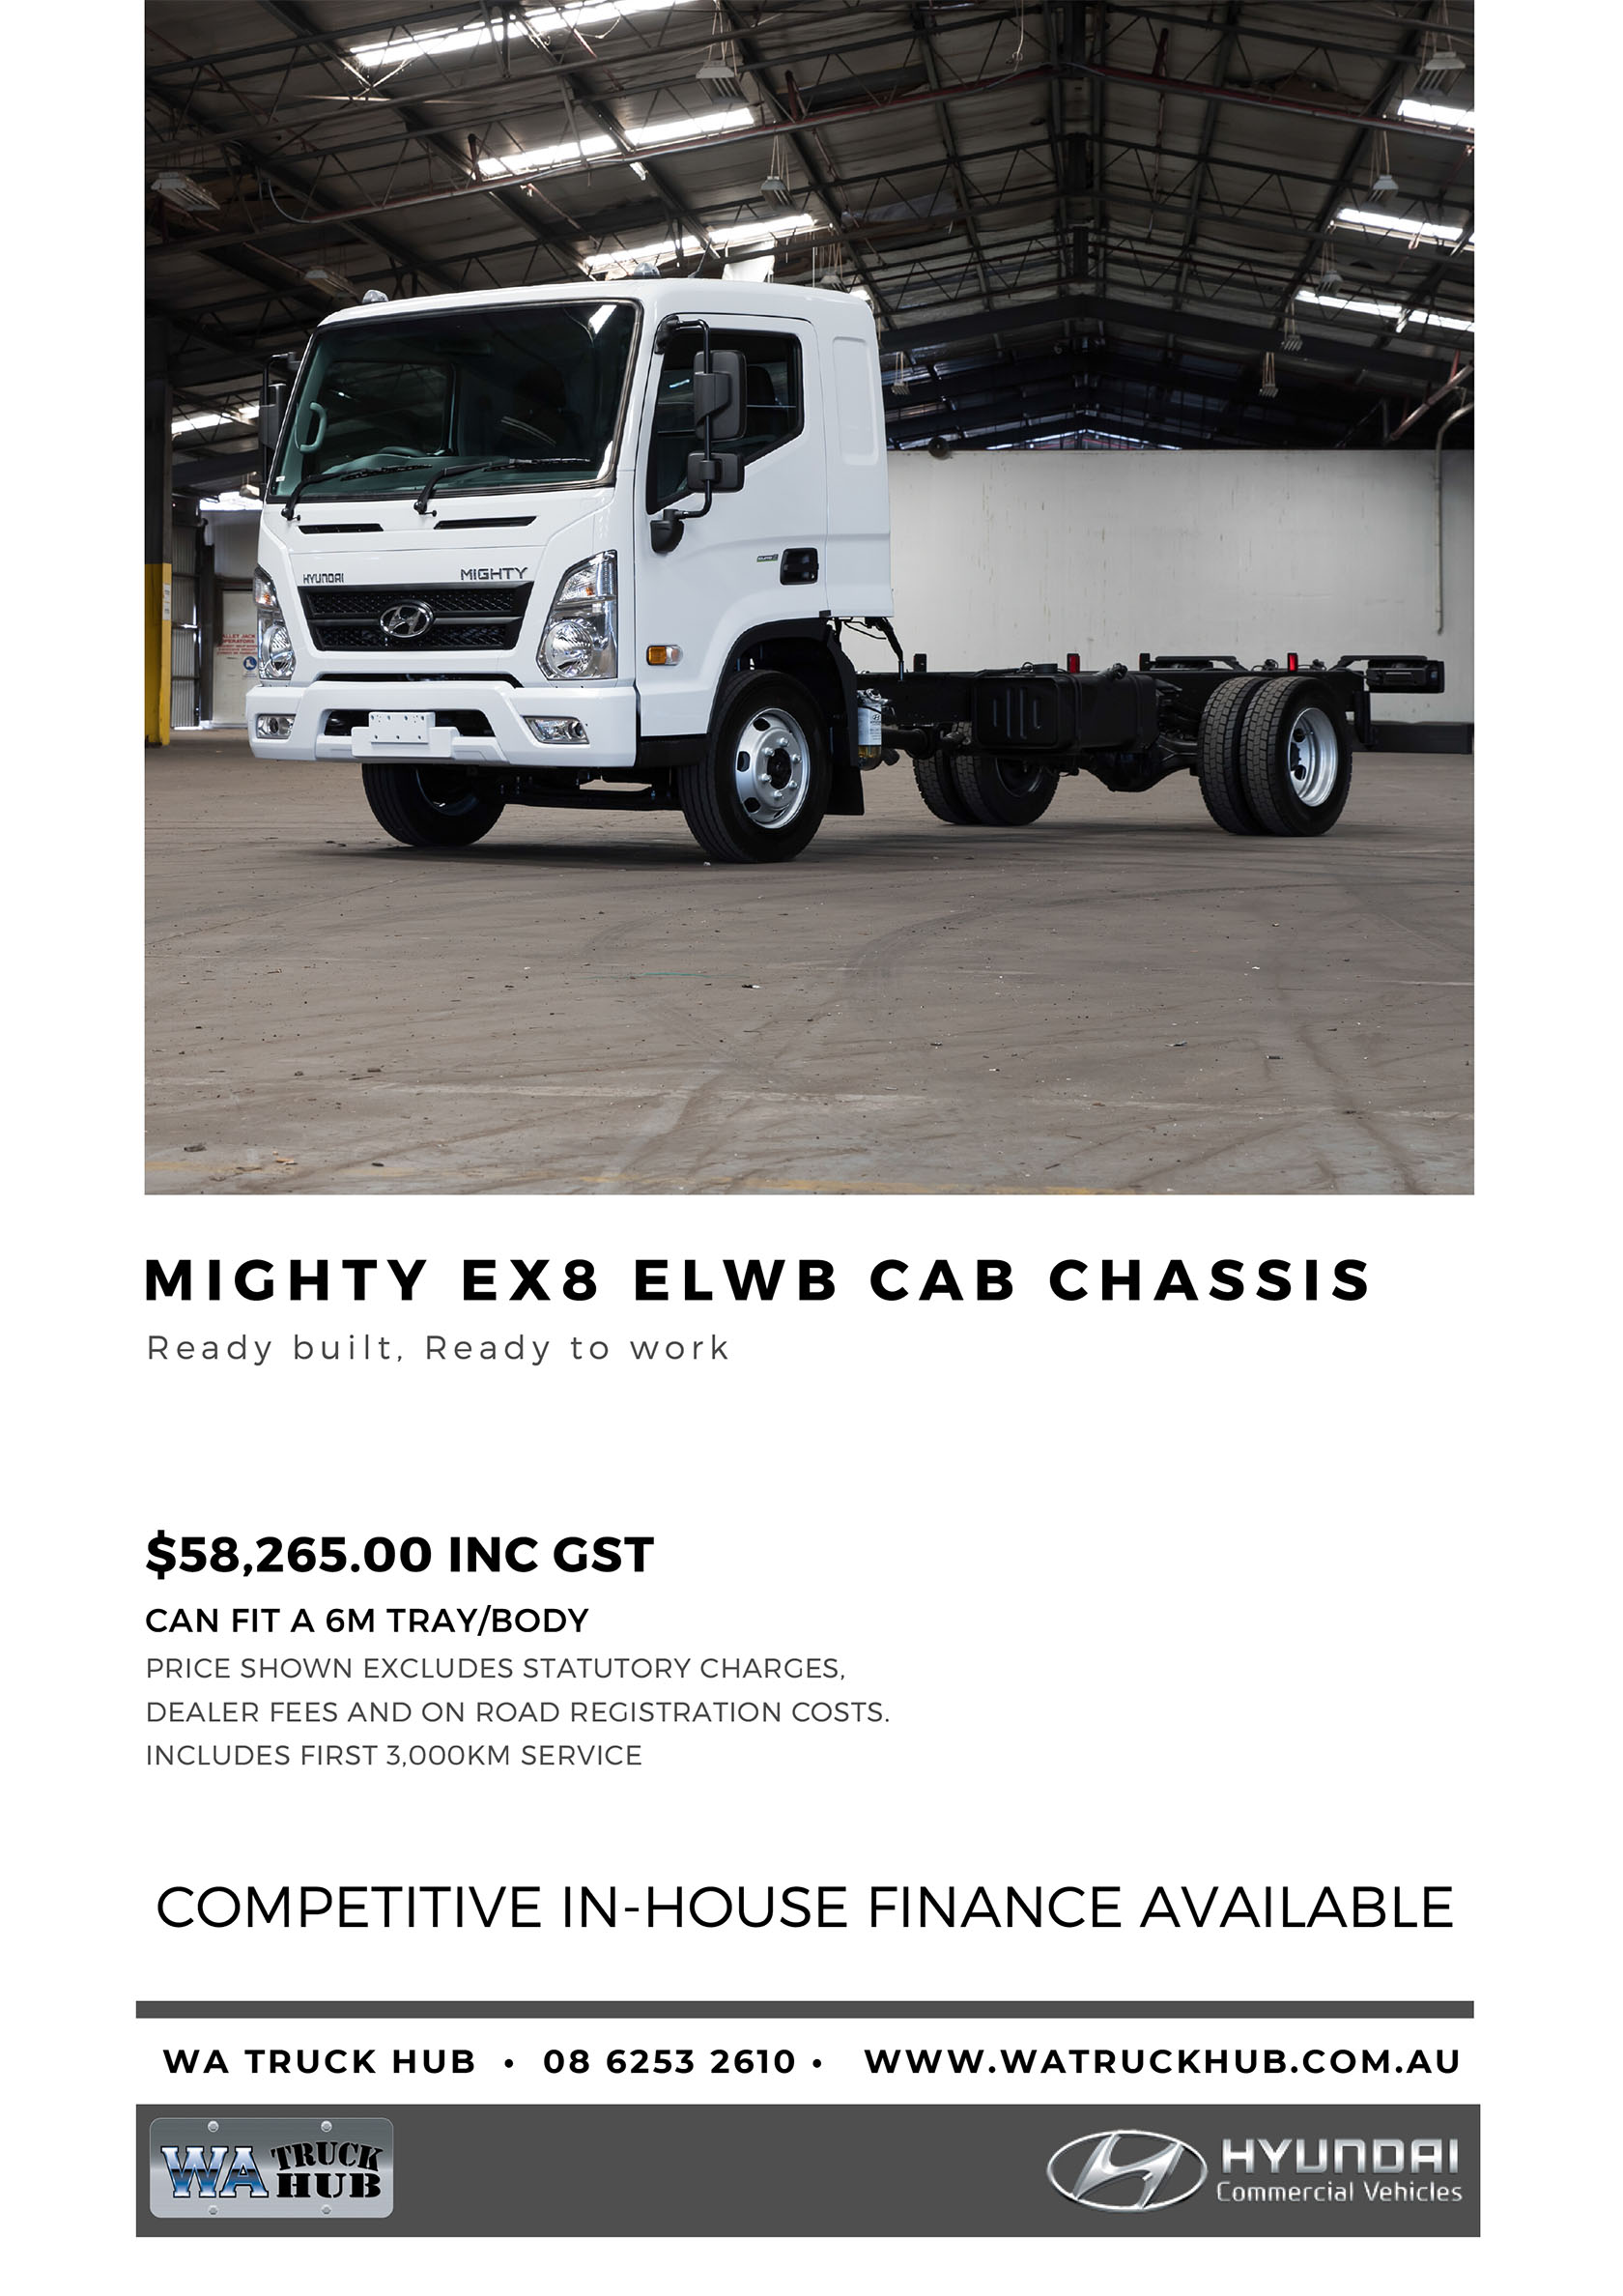 Mighty ELWB Cab Chassis Model - 2020